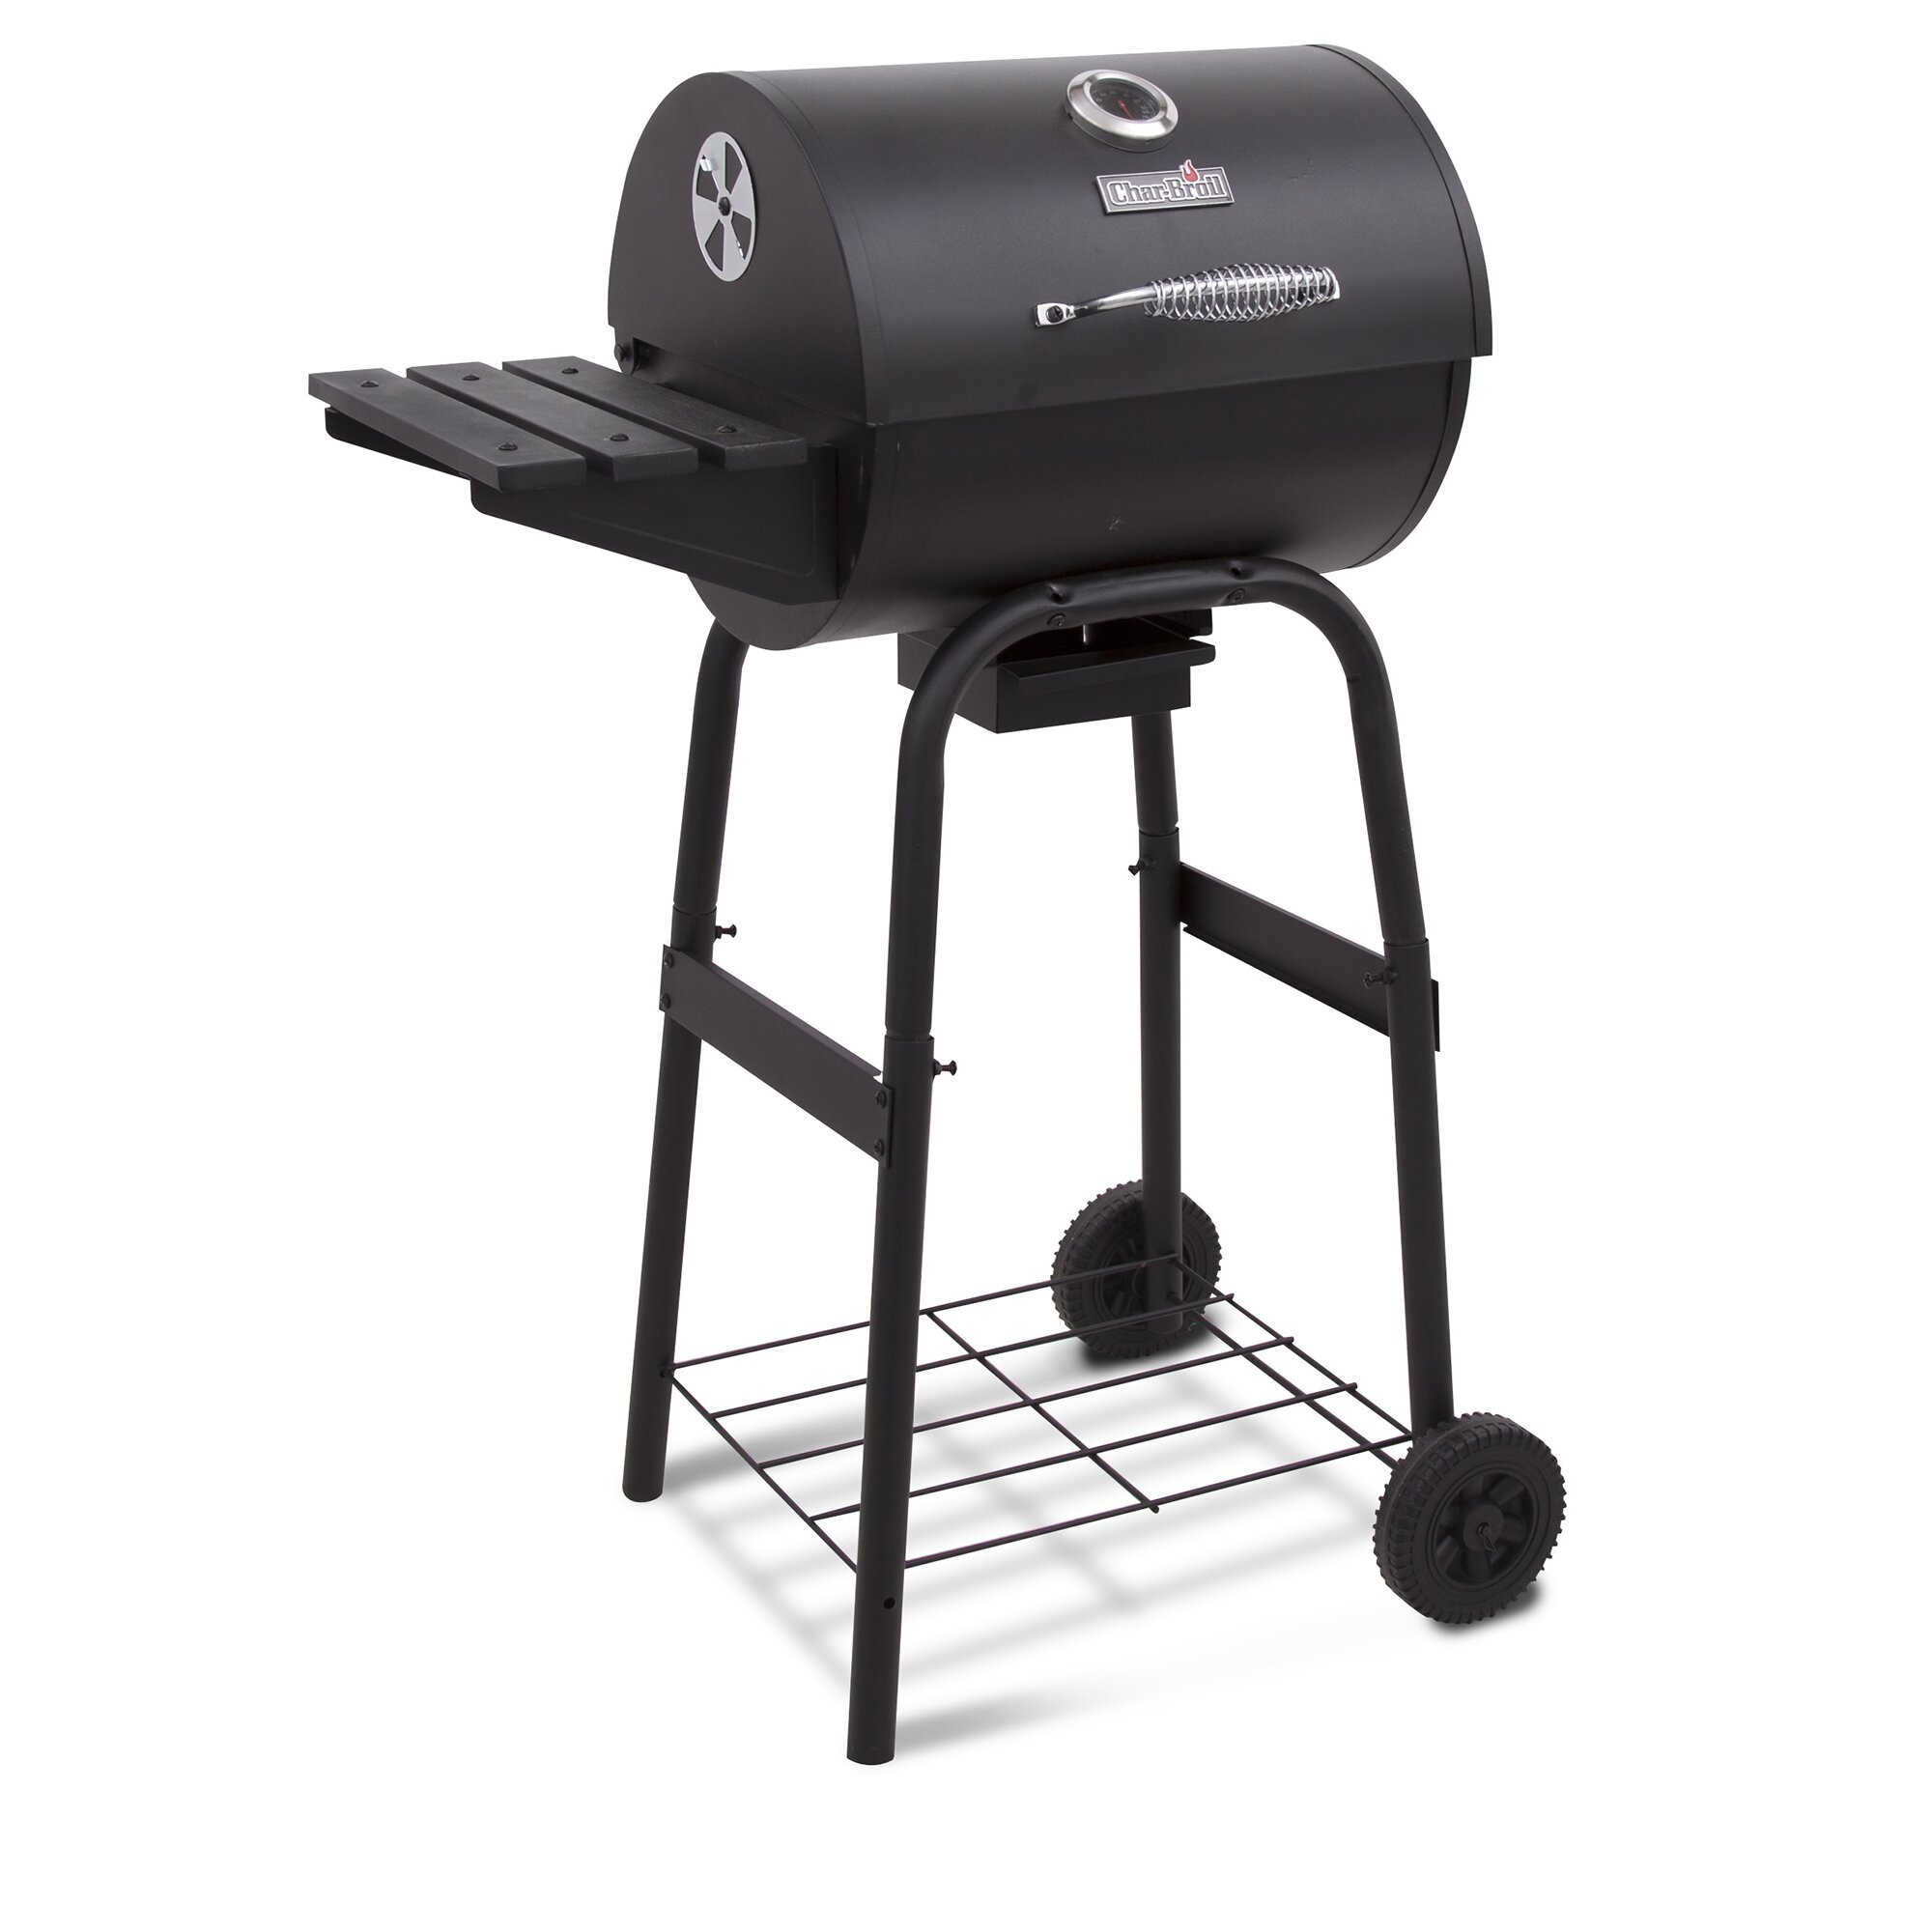 wohnzimmerz notebook grill with the best portable charcoal grills